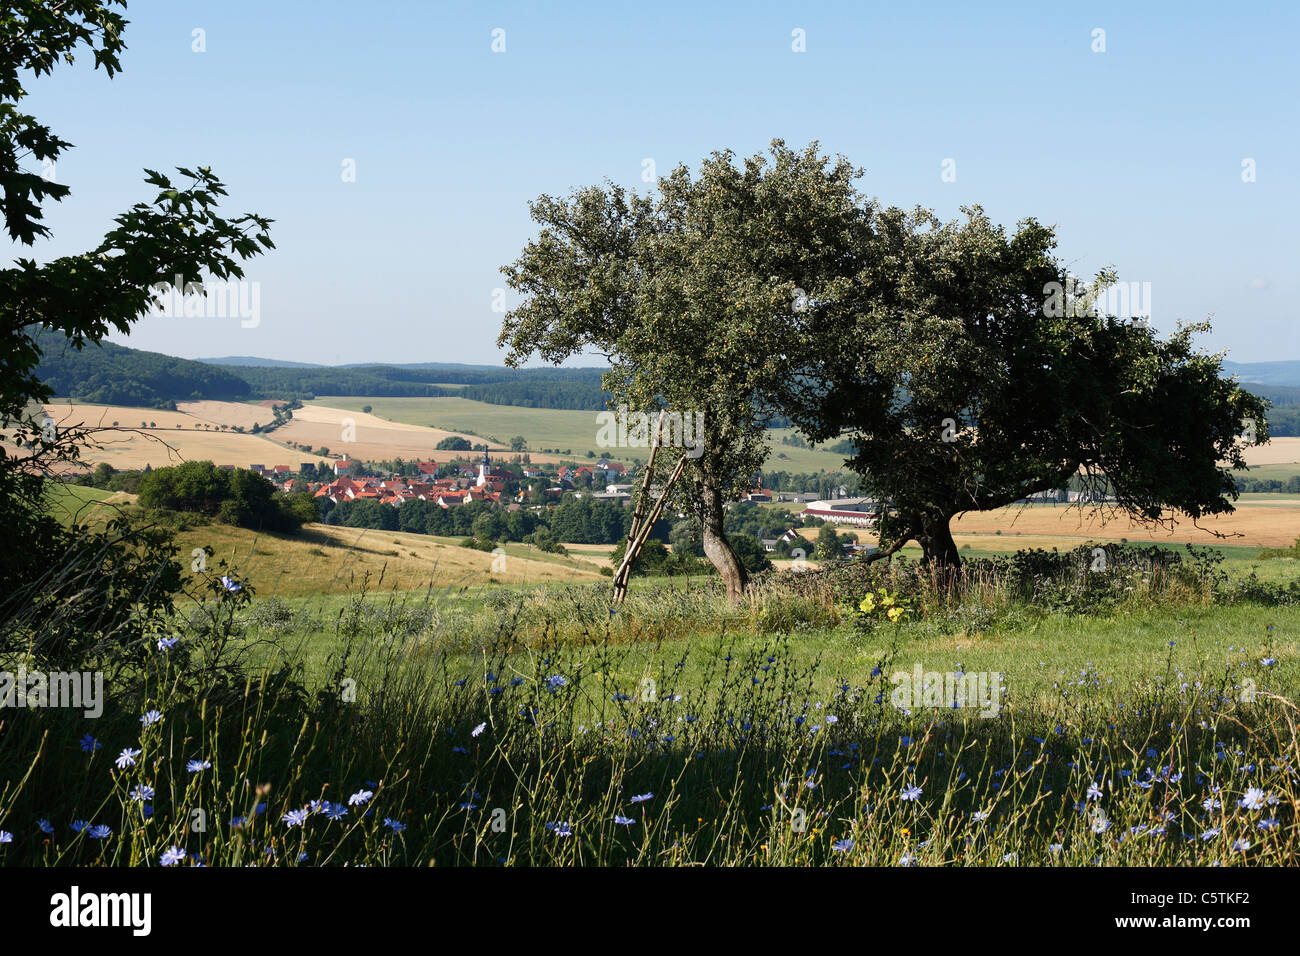 Germany, Thuringia, Rhoen, Rhoenblick, Helmershausen, View of buildings with mountains - Stock Image